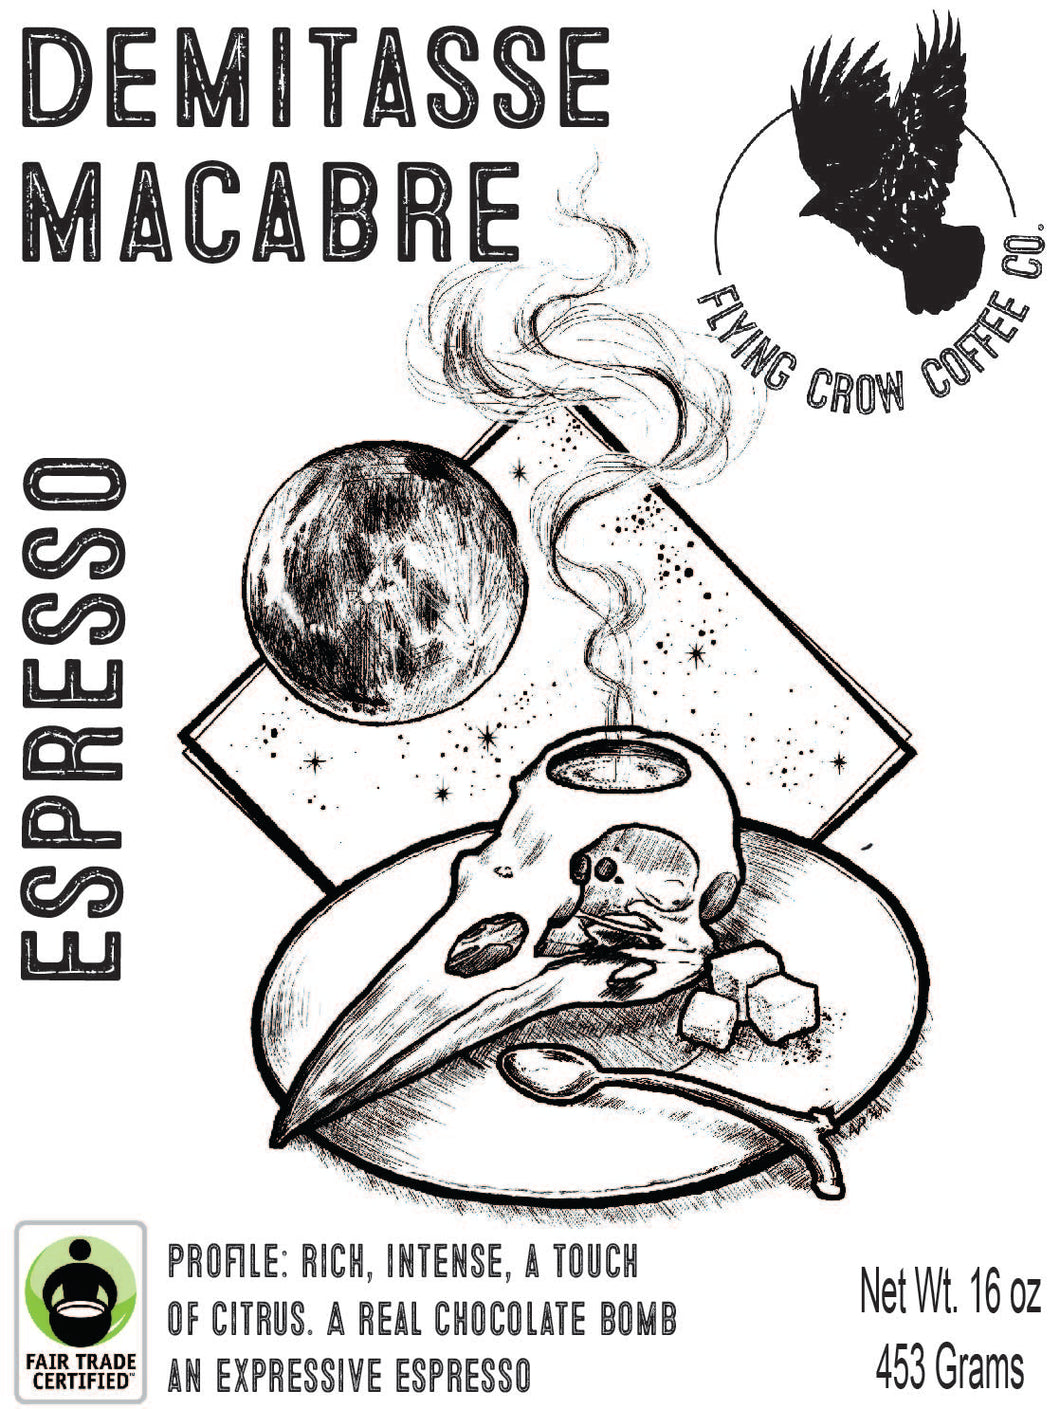 Demitasse Macabre Espresso Blend FTO - Dark Roast - One Pound